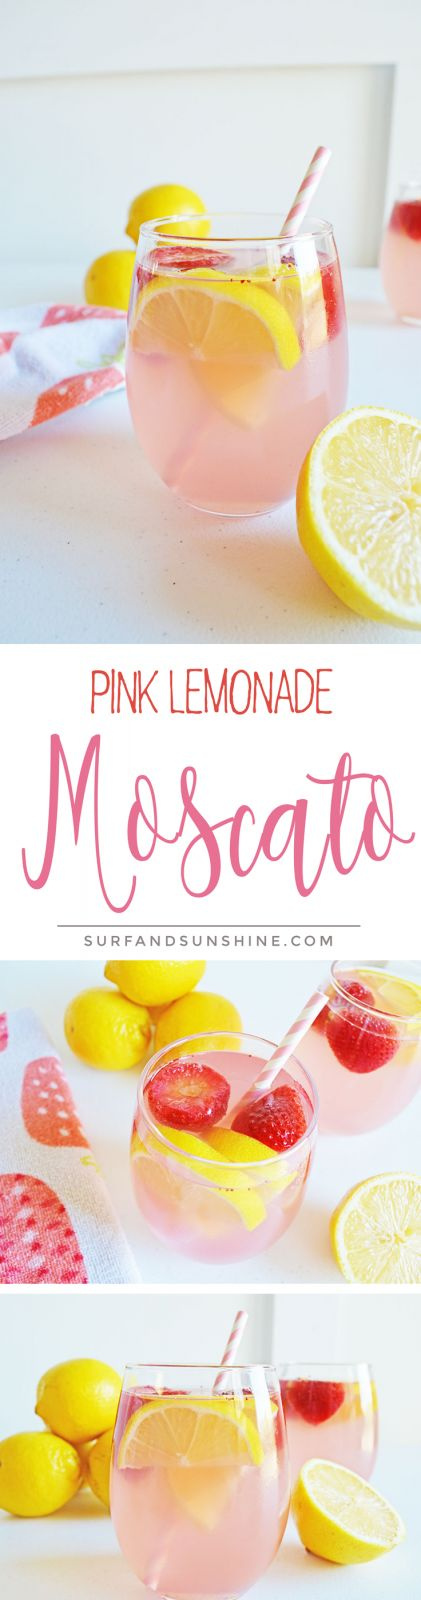 The Perfect Cocktail #Recipe to Ring in the #NewYear - Pink Lemonade Moscato via @Jeanabeena